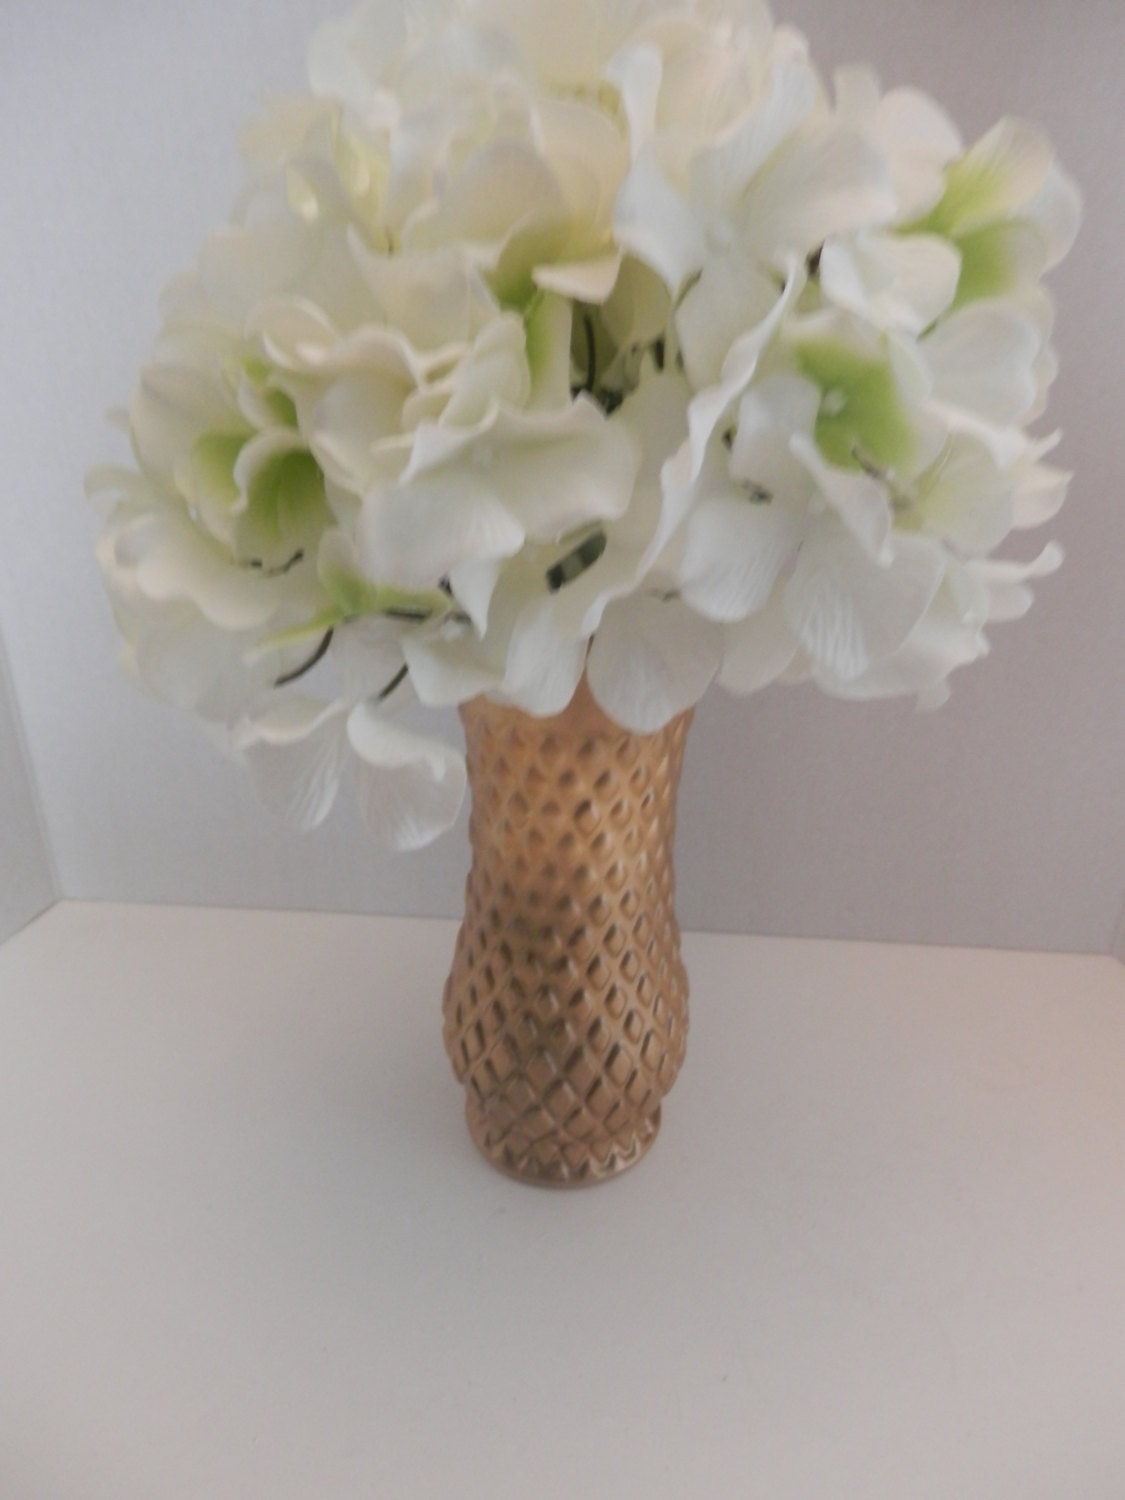 Wedding Flowers In Vases : Wedding gold flower vases decorations by